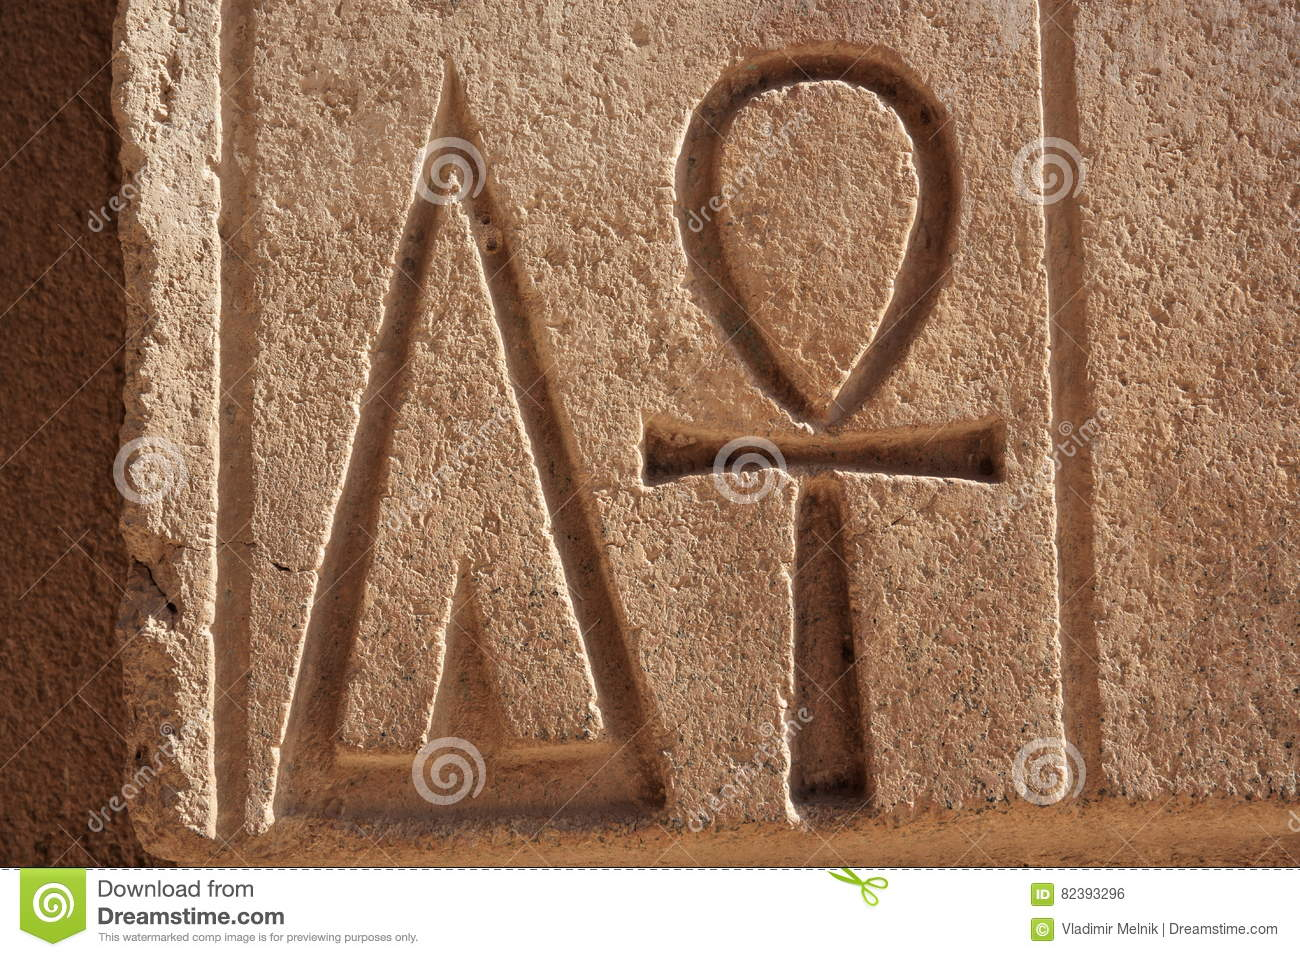 100 ancient symbols com egyptian background with frame made ancient symbols com the ankh ancient symbol also known as key of life egypt stock buycottarizona